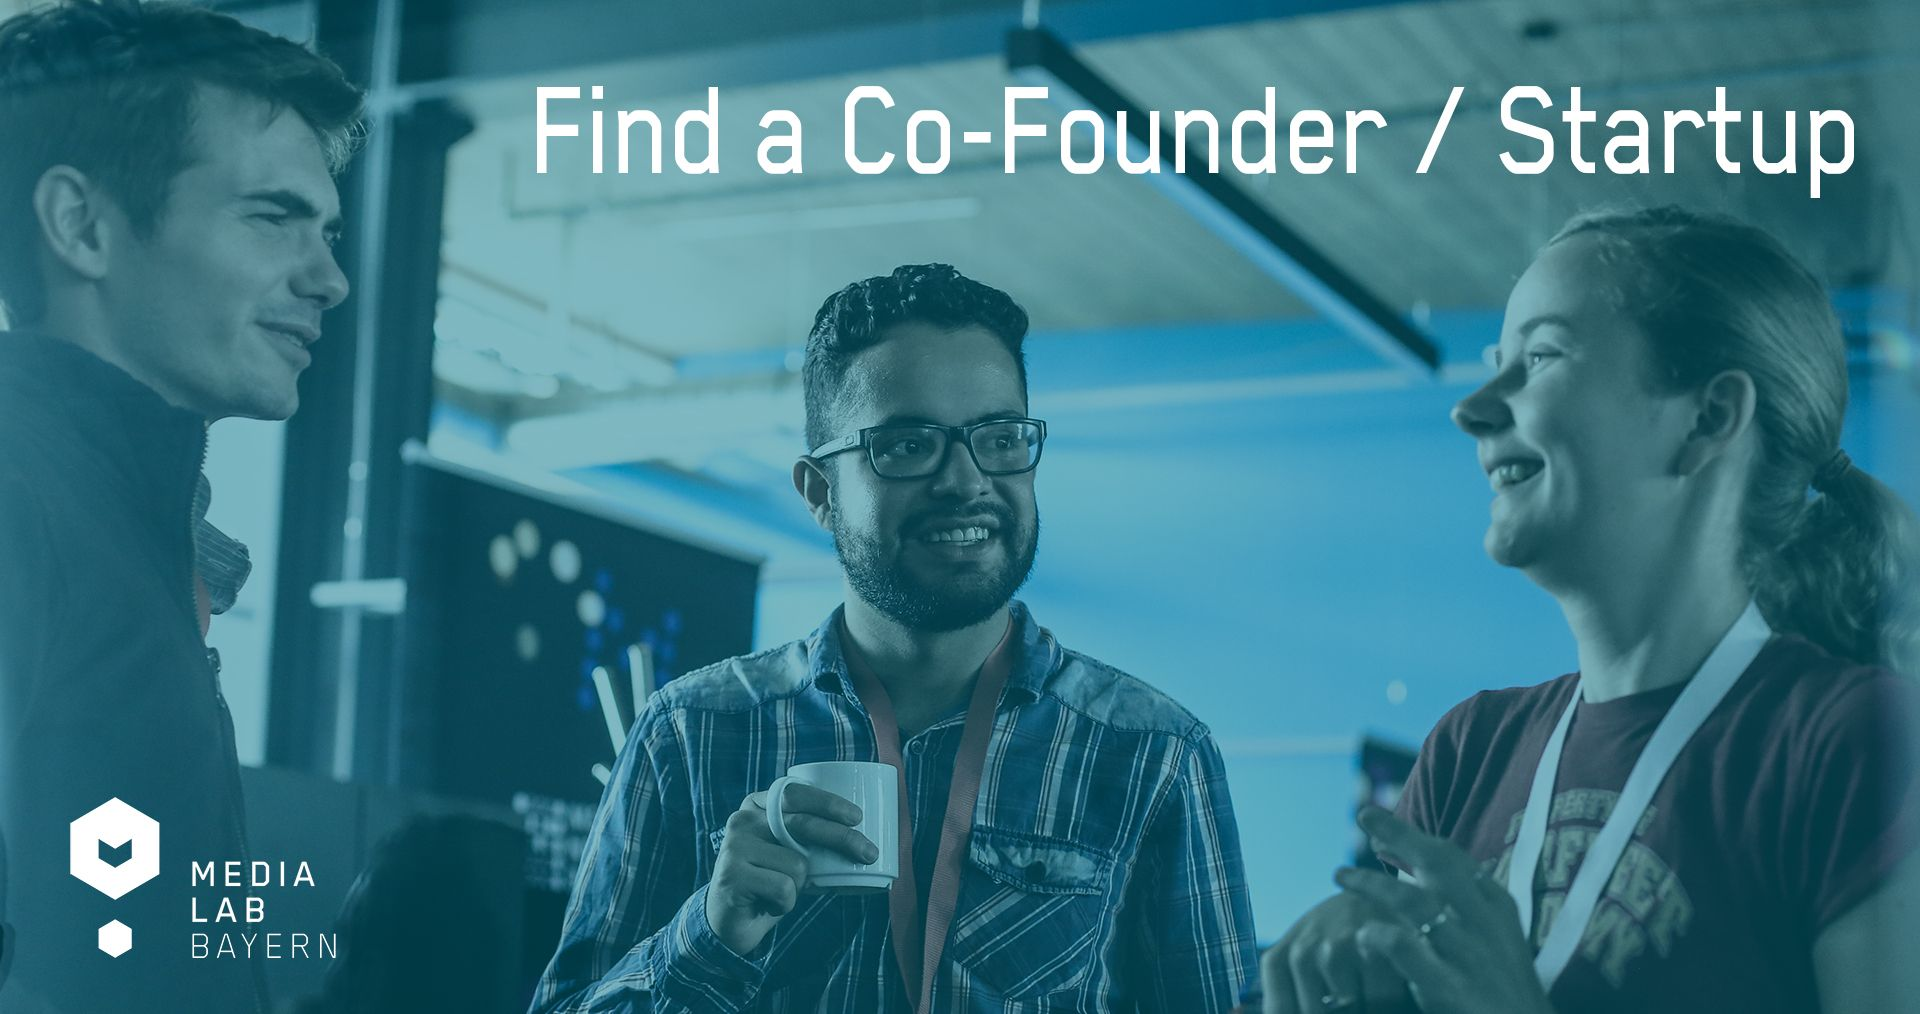 Find your Co-Founder / Startup